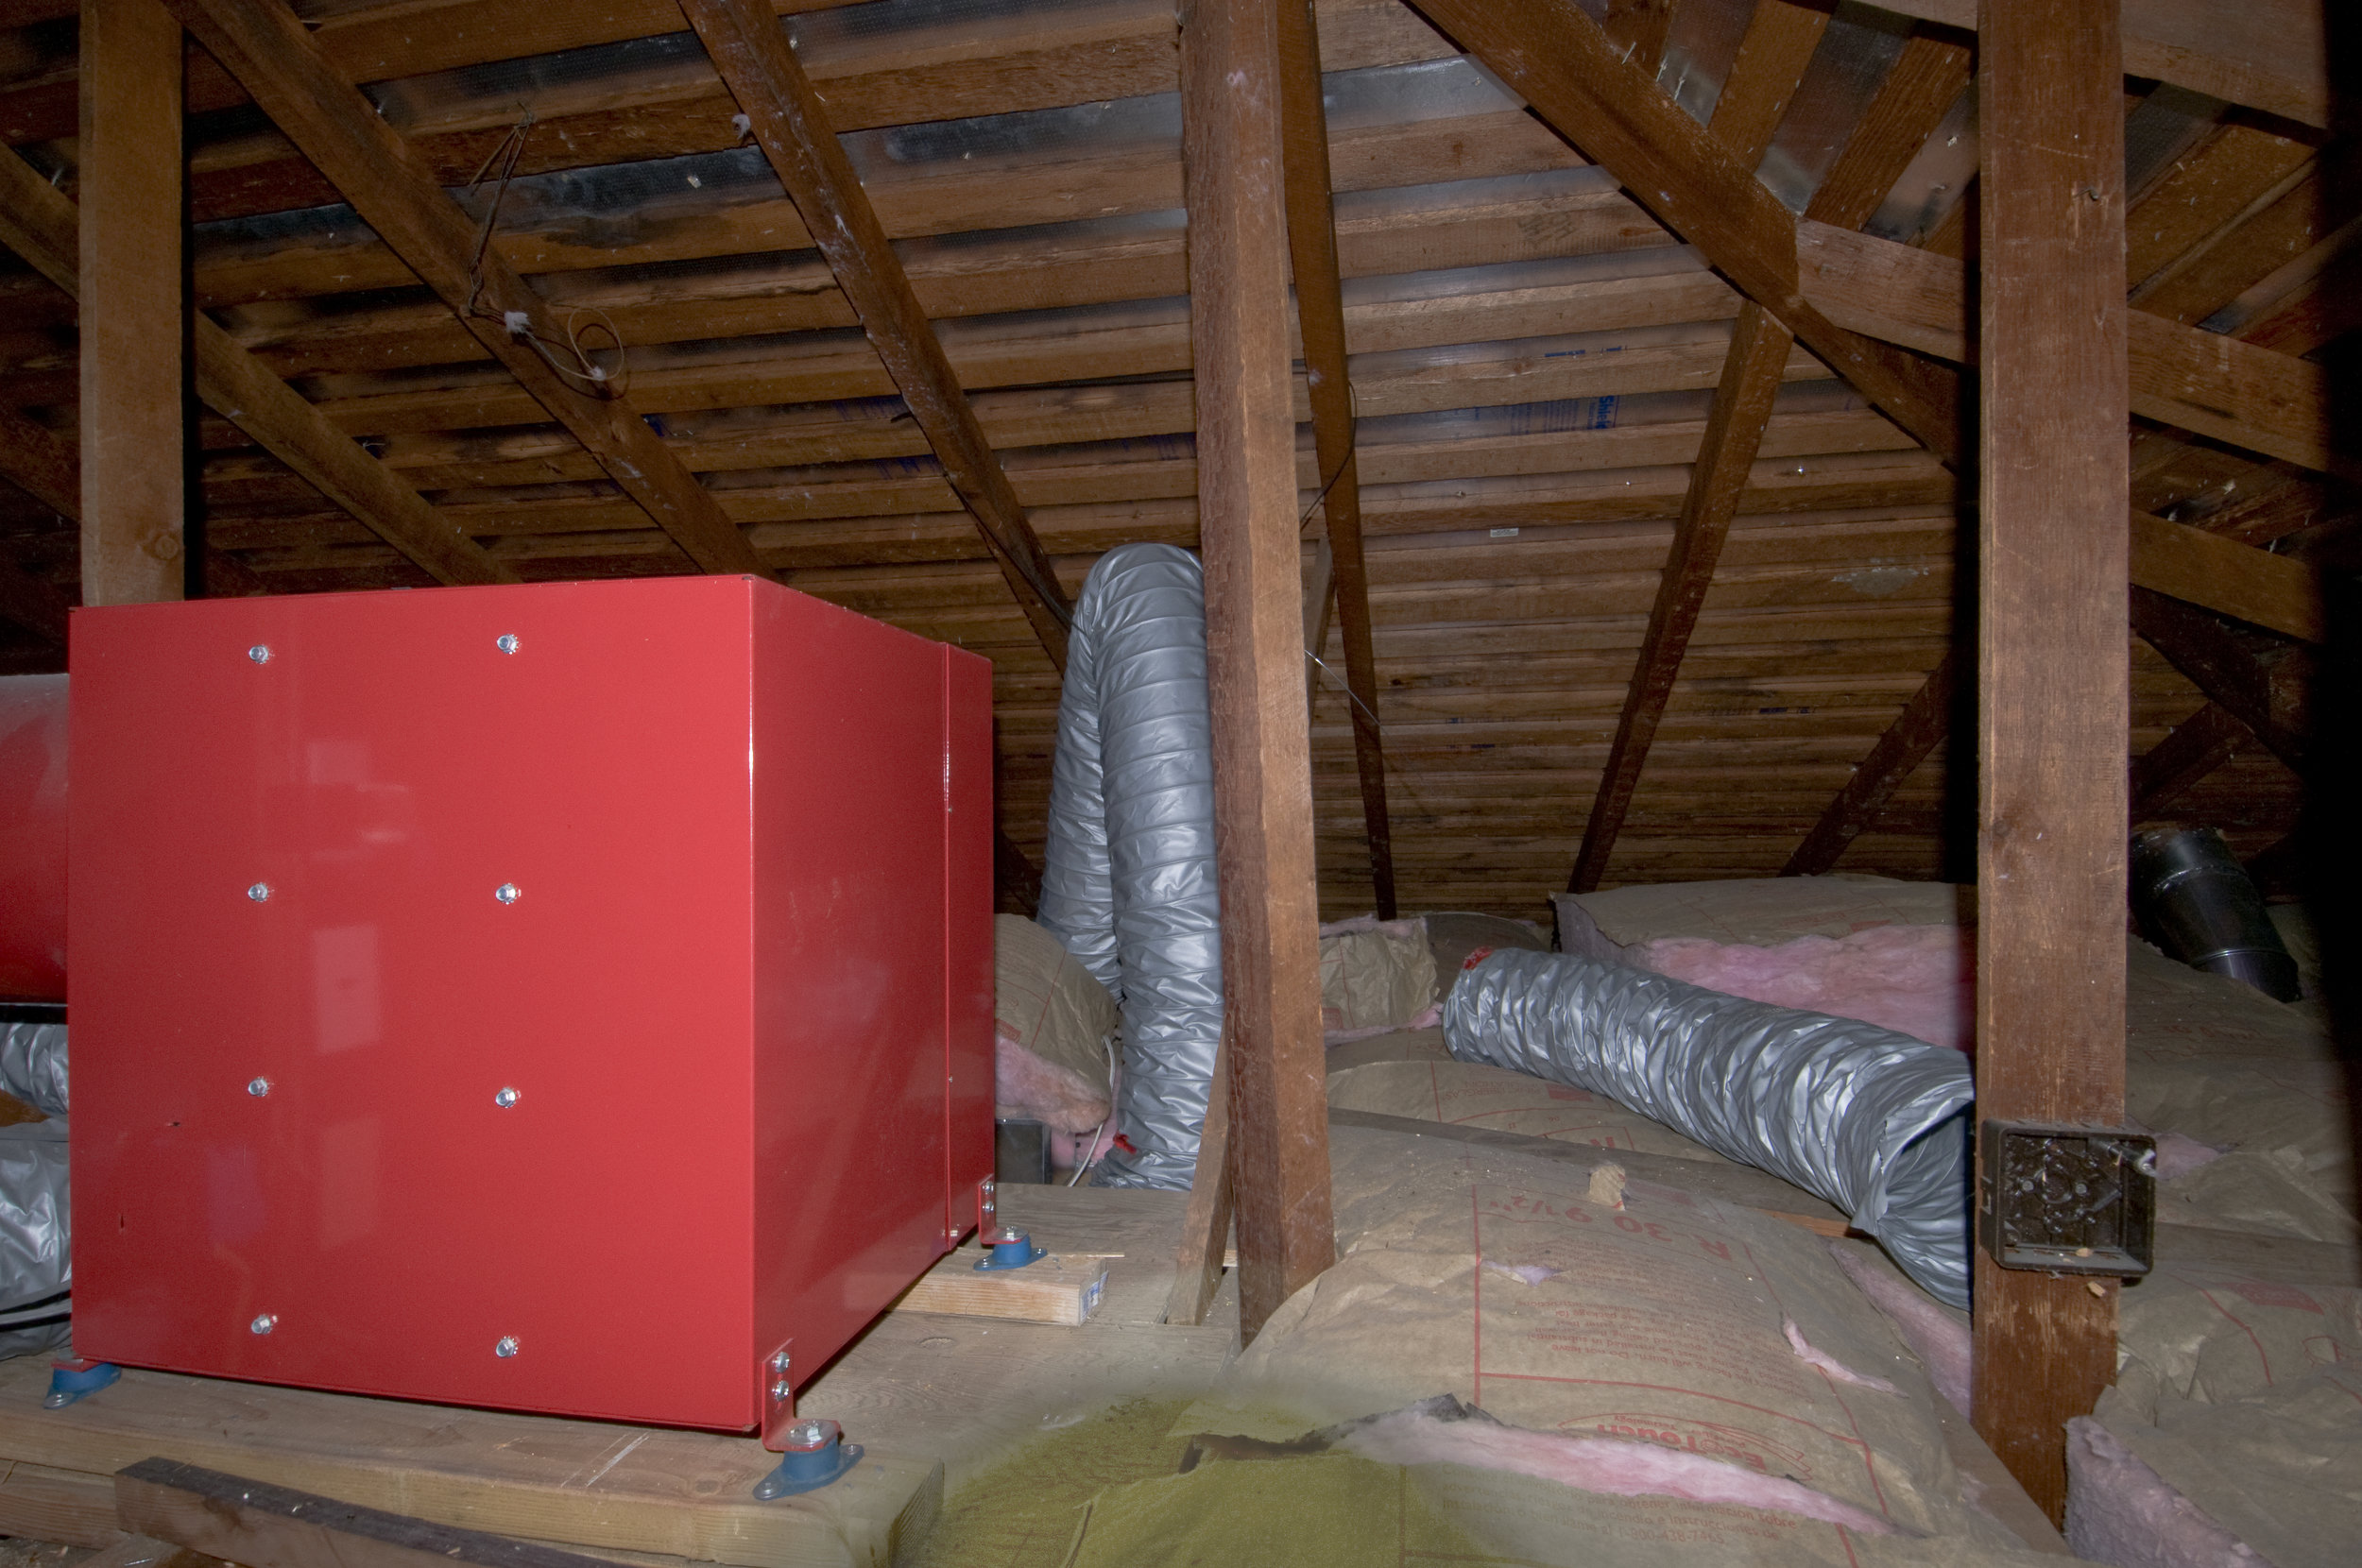 Whole House Fan in attic to provide mechanical assistance to this naturally ventilated house with no air conditioning